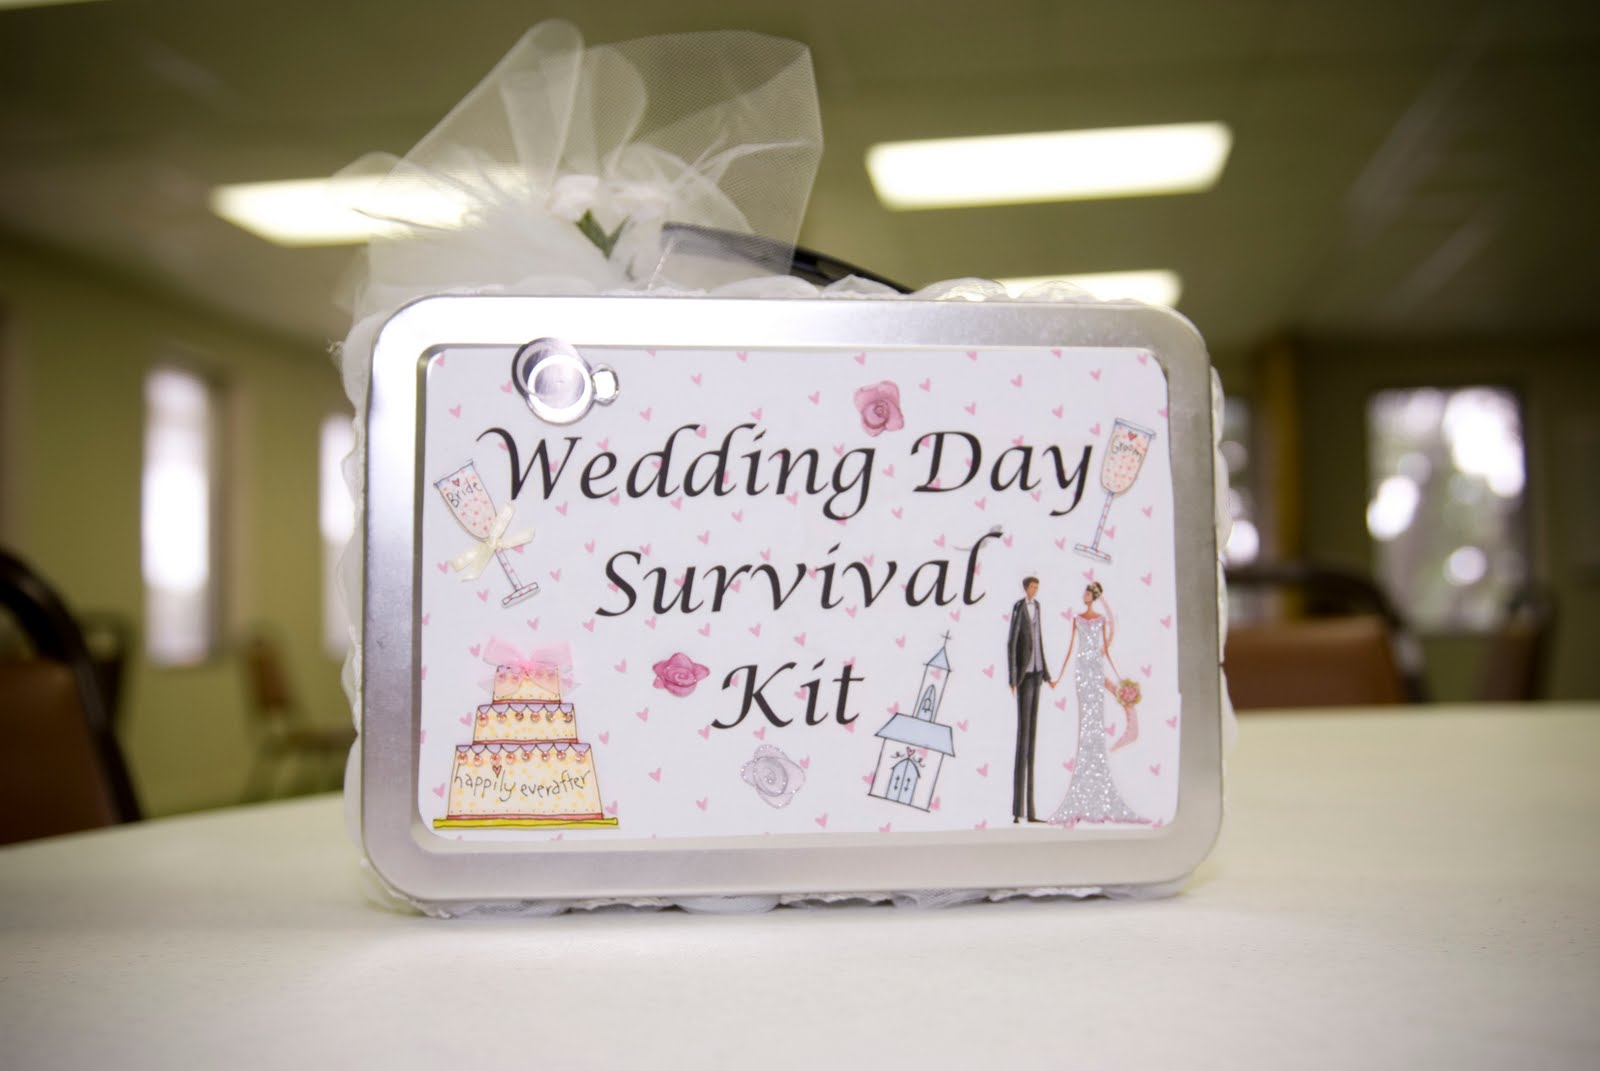 Full of Craft: Wedding Week: Wedding Day Survival Kit